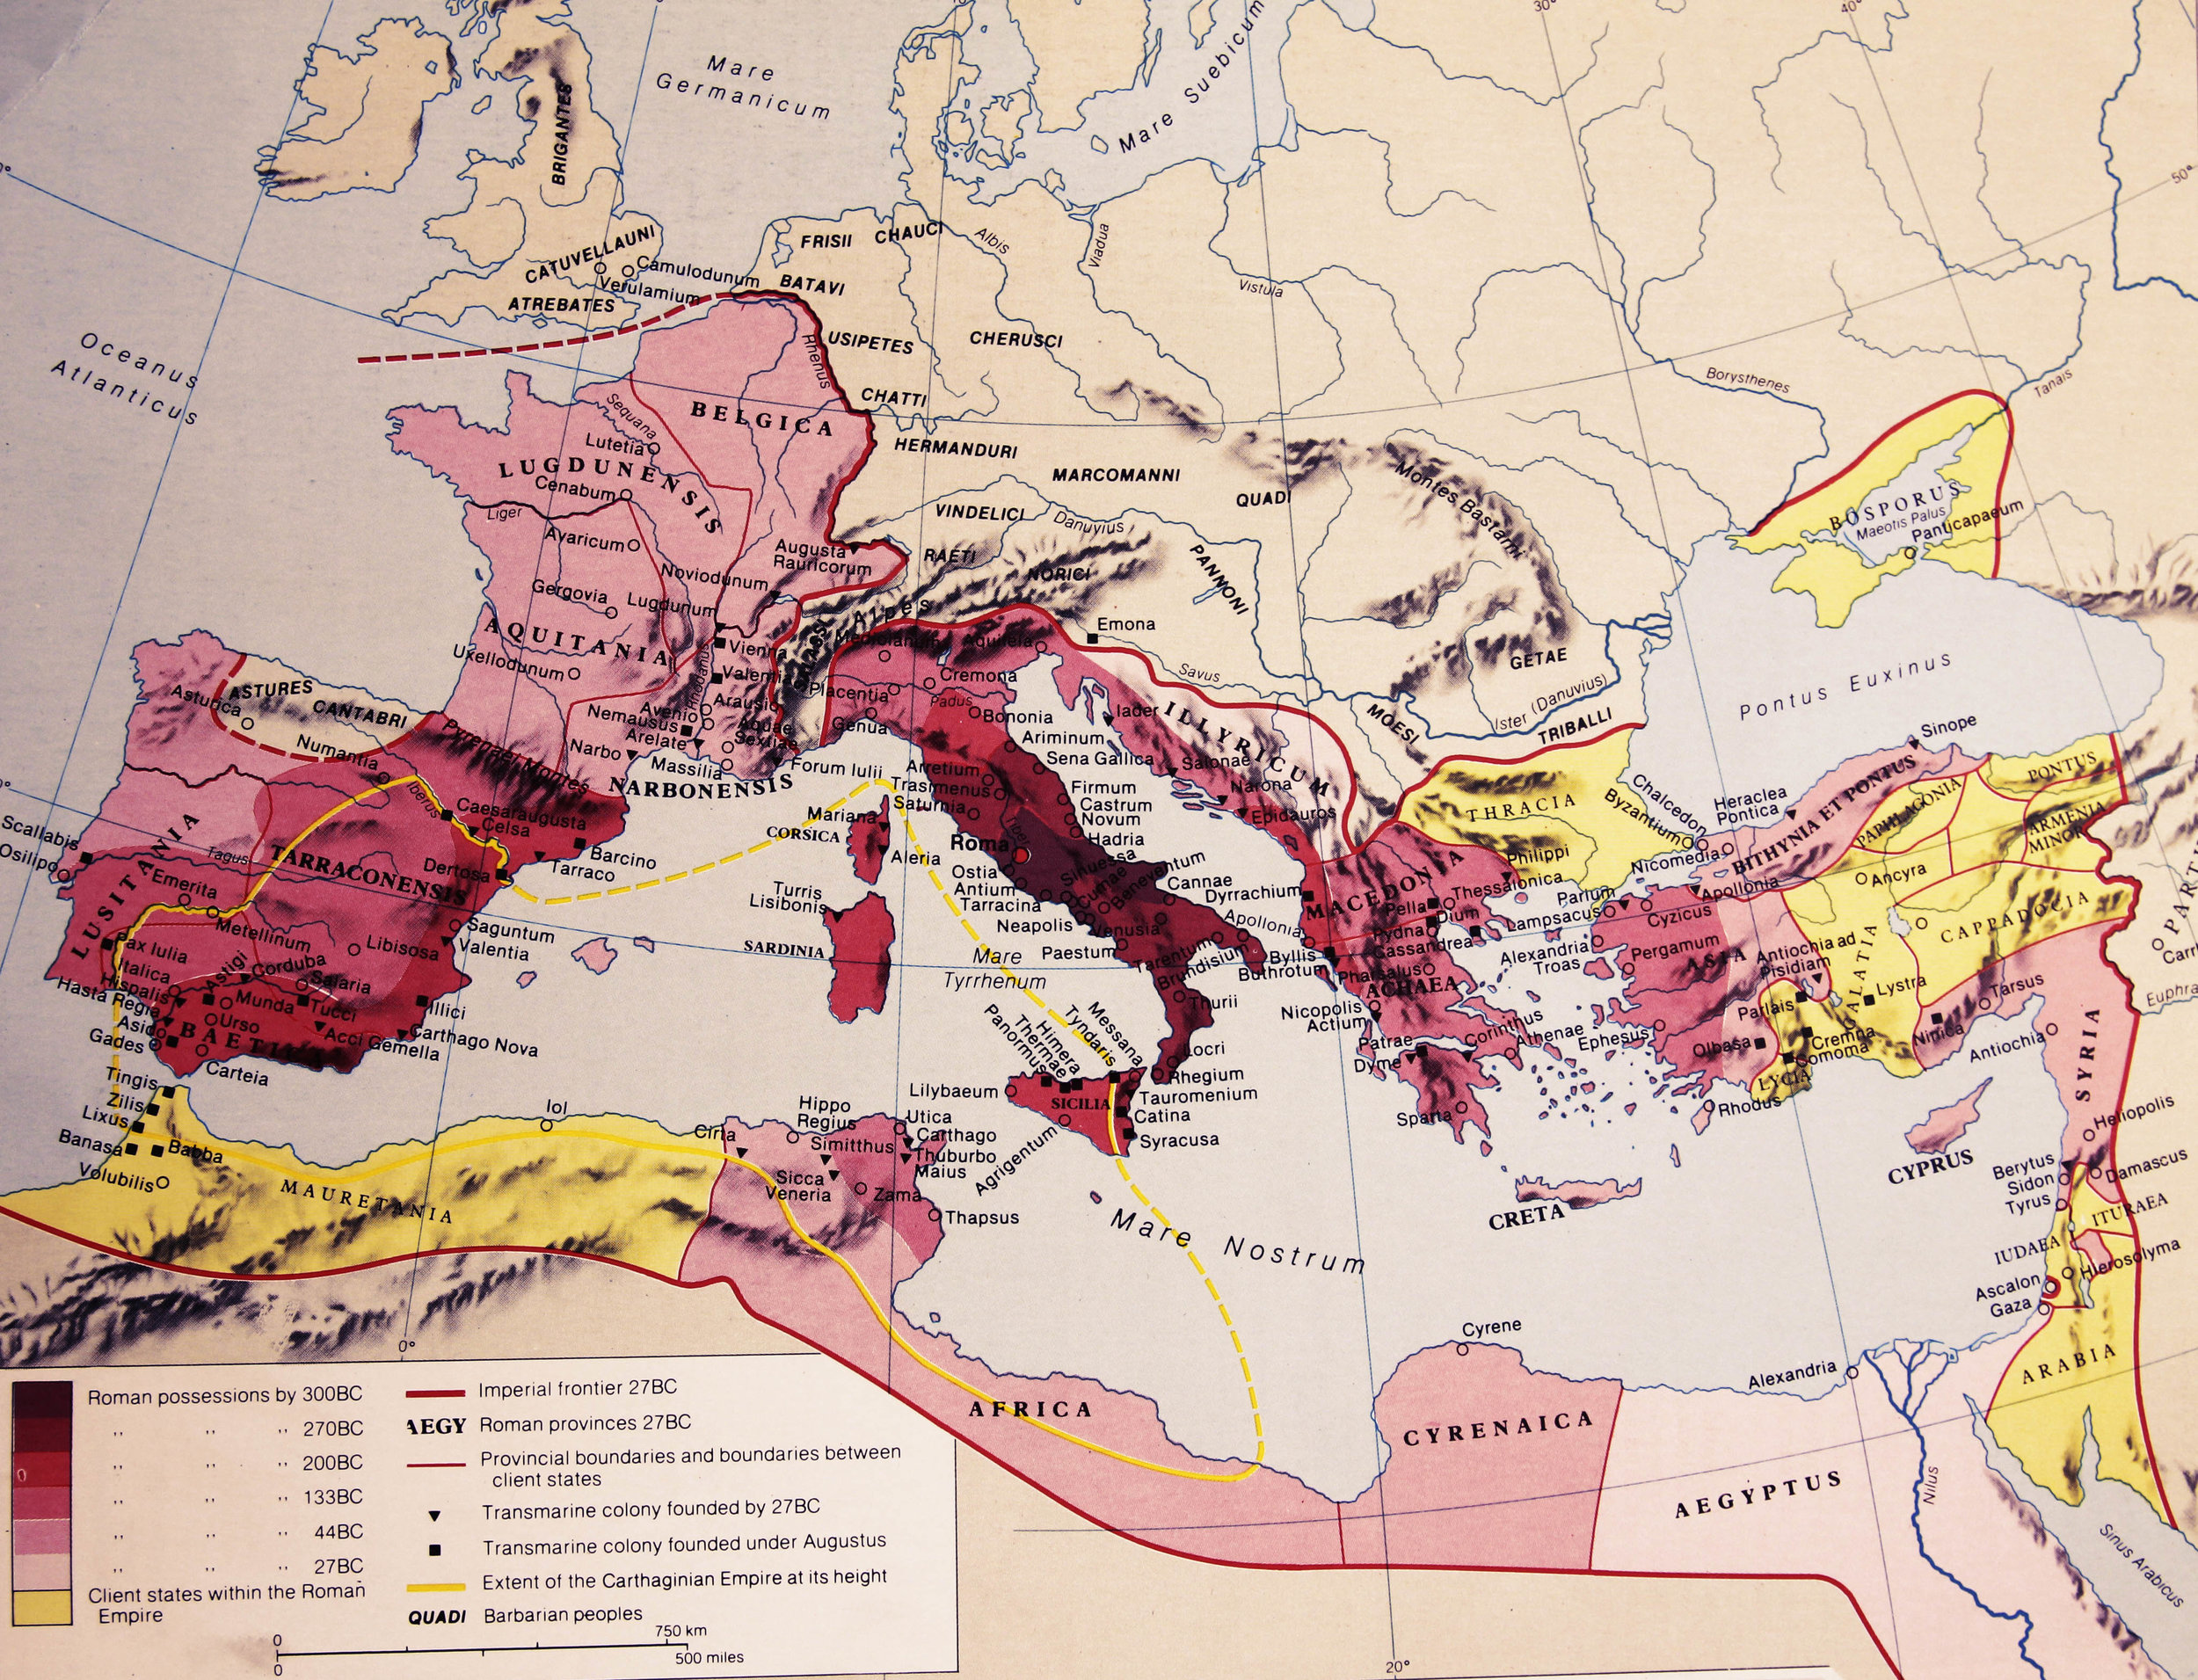 The Growth of the Roman Empire. Source:  R.I. Moore (1981) Hamlyn Historical Atlas.